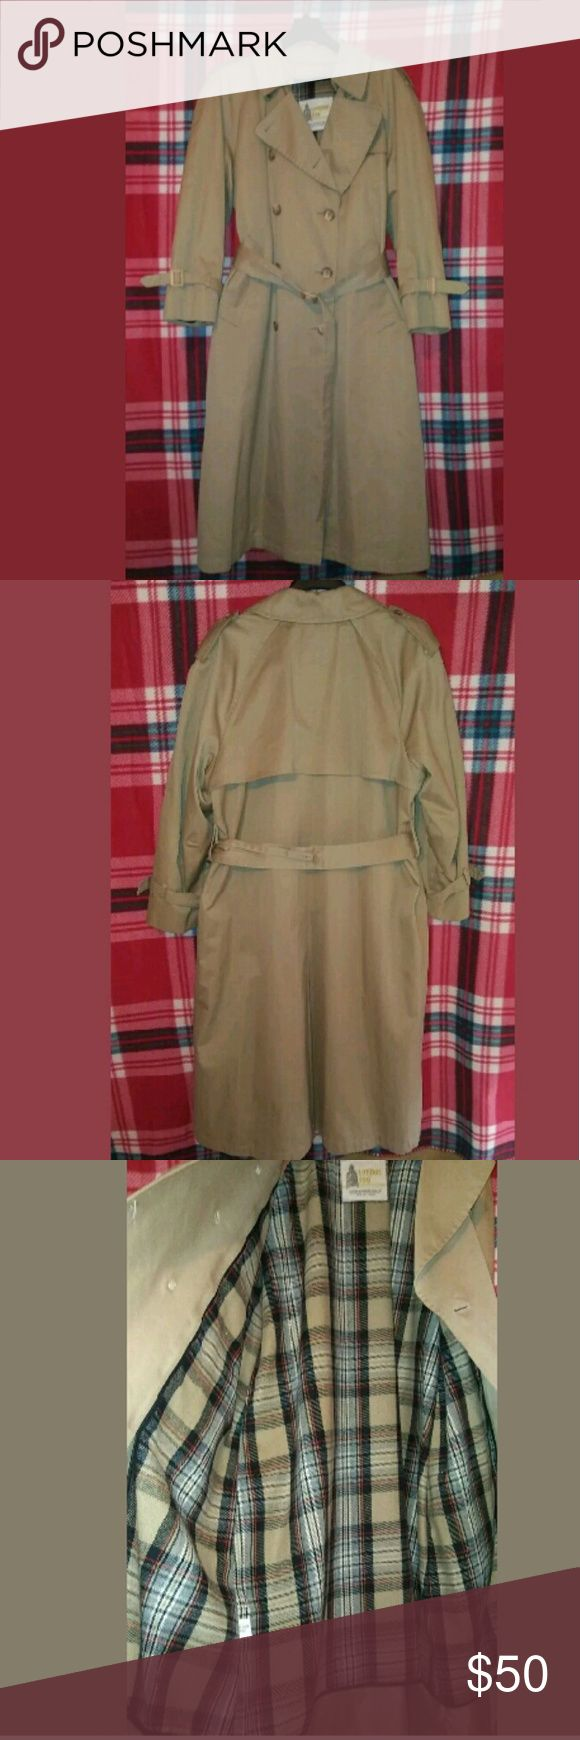 London Fog long belted classic khaki trench coat In excellent like new condition London Fog Jackets & Coats Trench Coats